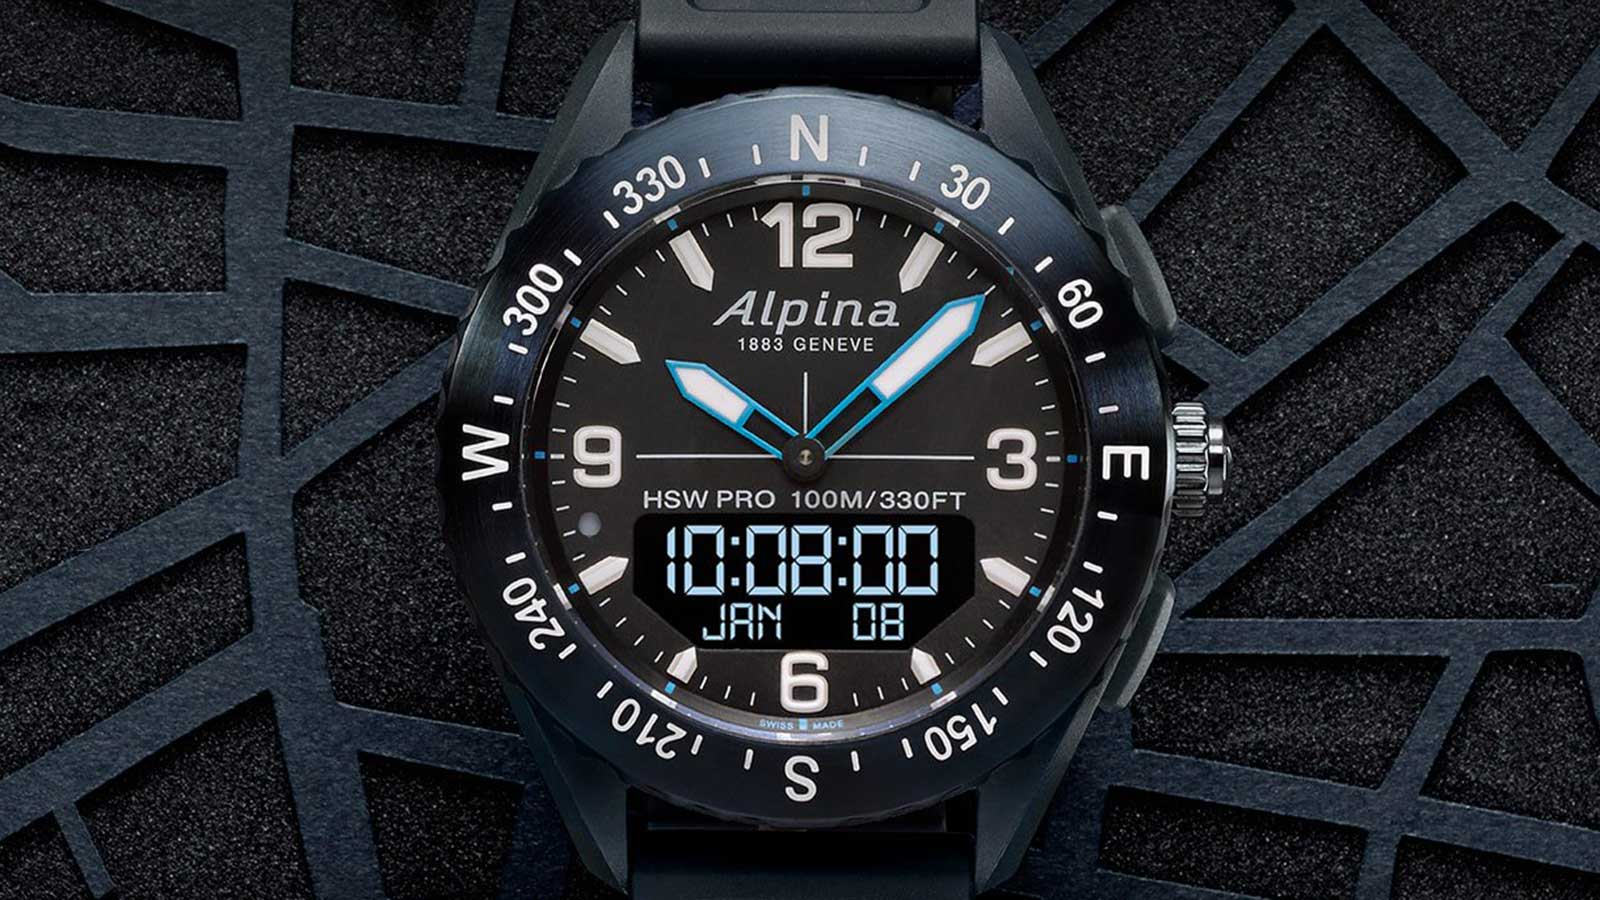 AlpinerX - Is This The Perfect Outdoorsman Watch